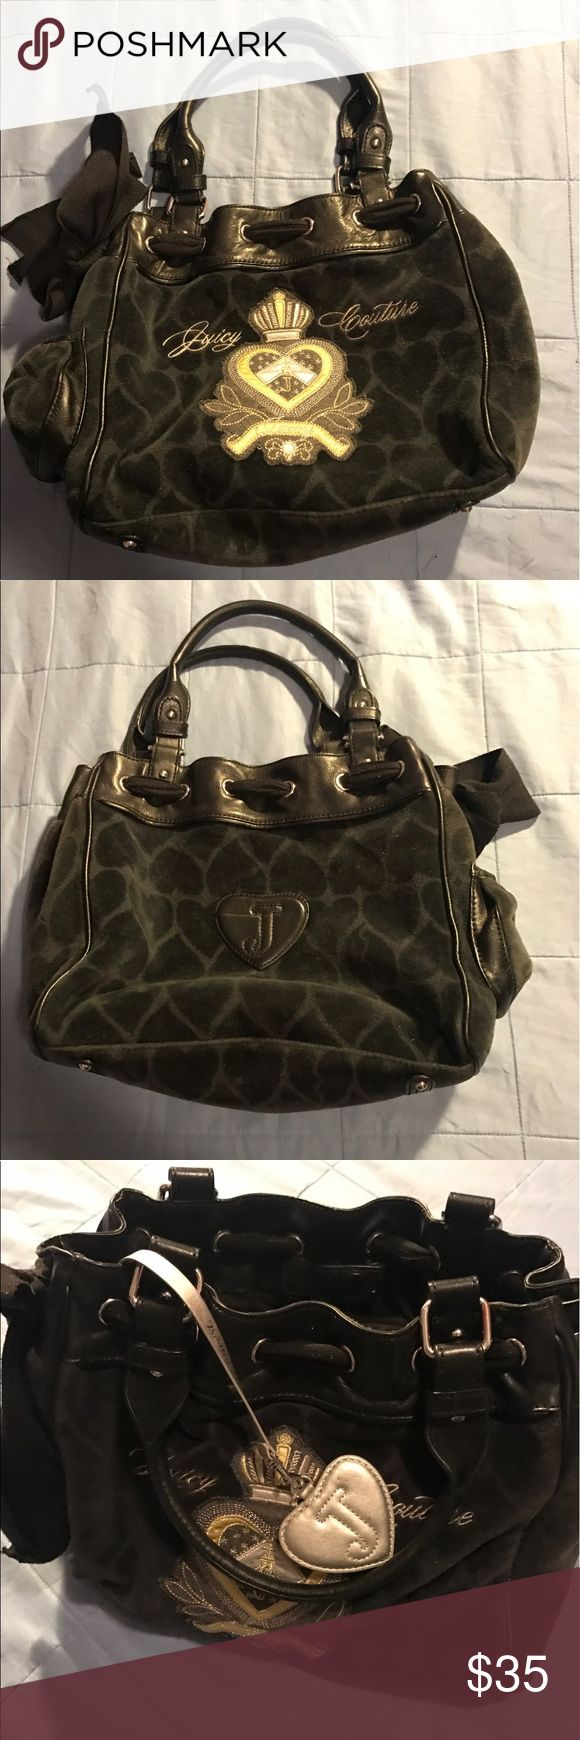 WOMENS JUICY COUTURE LARGE SUEDE LEATHER HANDBAG Large handbag. MSRP $299. 100% authentic Juicy Couture leather and suede. any questions about this item pls comment. Juicy Couture Bags Shoulder Bags